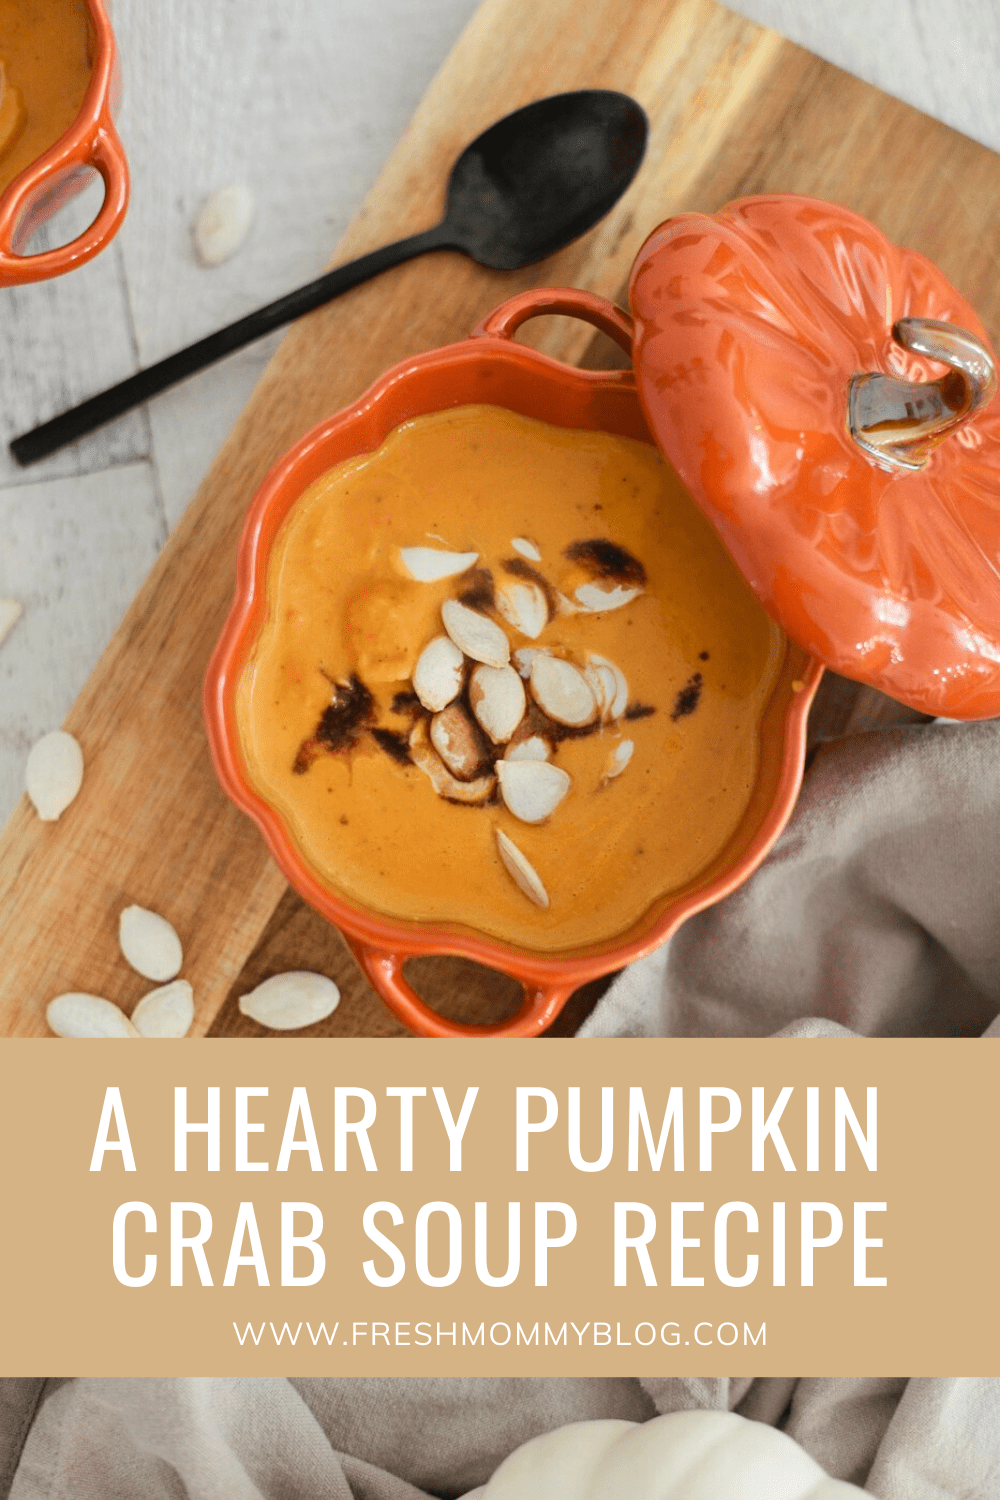 A Hearty Pumpkin Crab Soup to Cozy Up from top Florida Lifestyle Blogger Tabitha Blue of Fresh Mommy Blog.